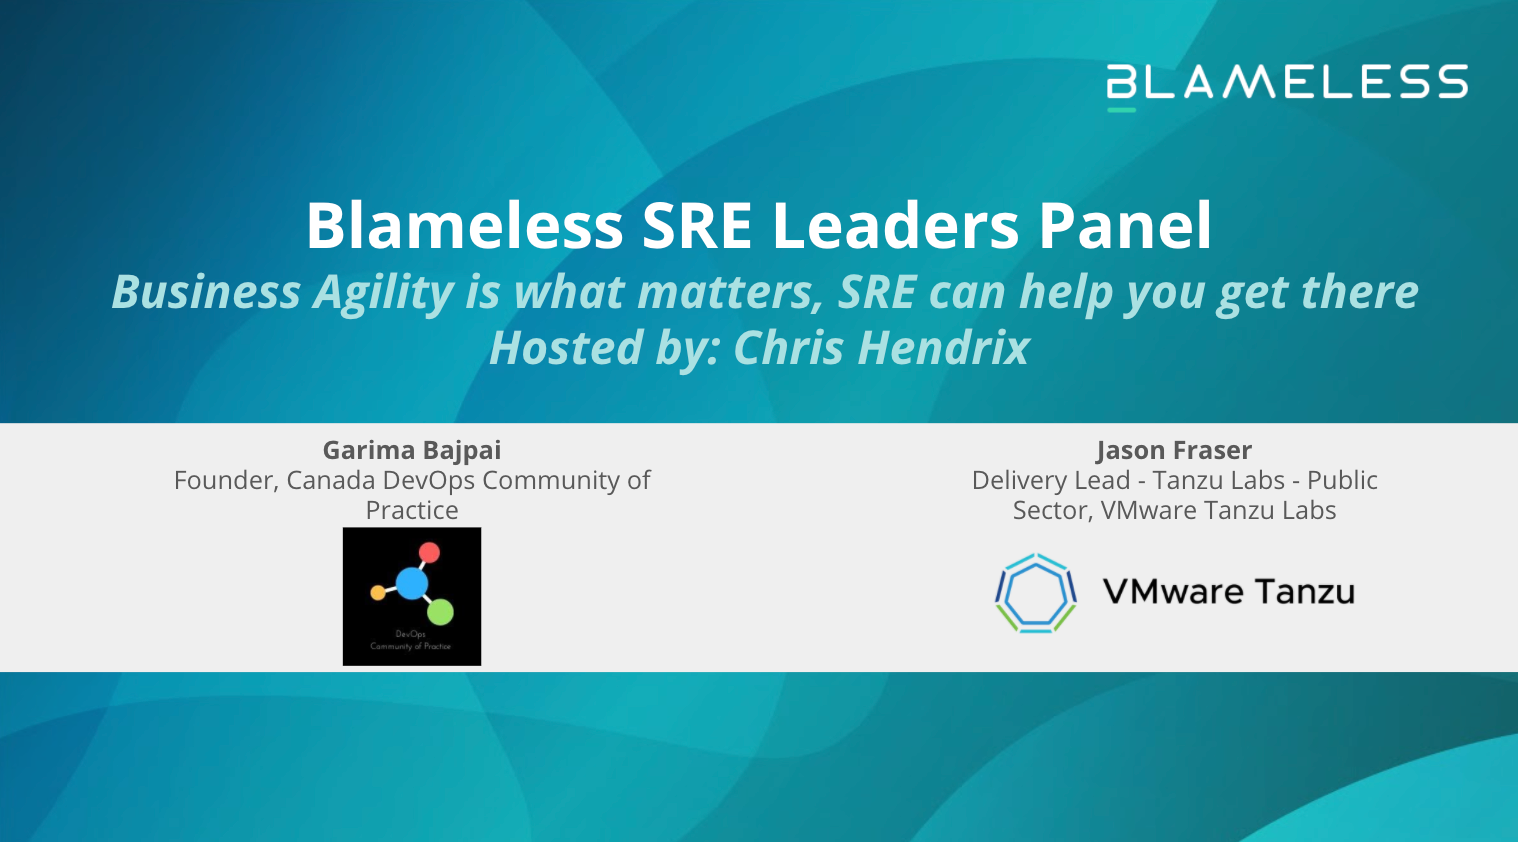 SRE Leaders Panel: Business Agility is what matters, SRE can help you get there